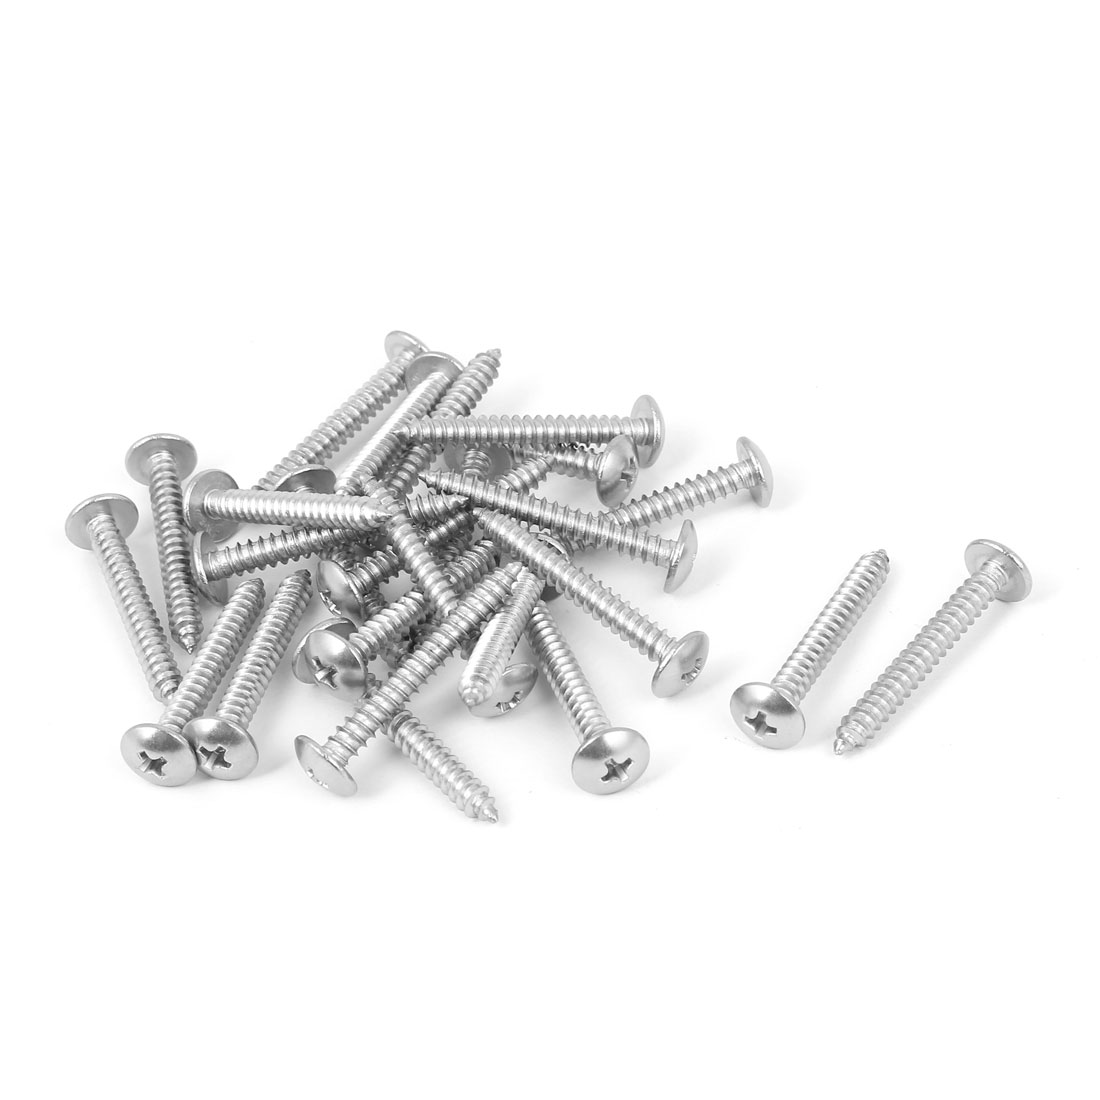 Uxcell 8 M4 2x32mm Stainless Steel Truss Head Self Tapping Thread Screw 25 Pack